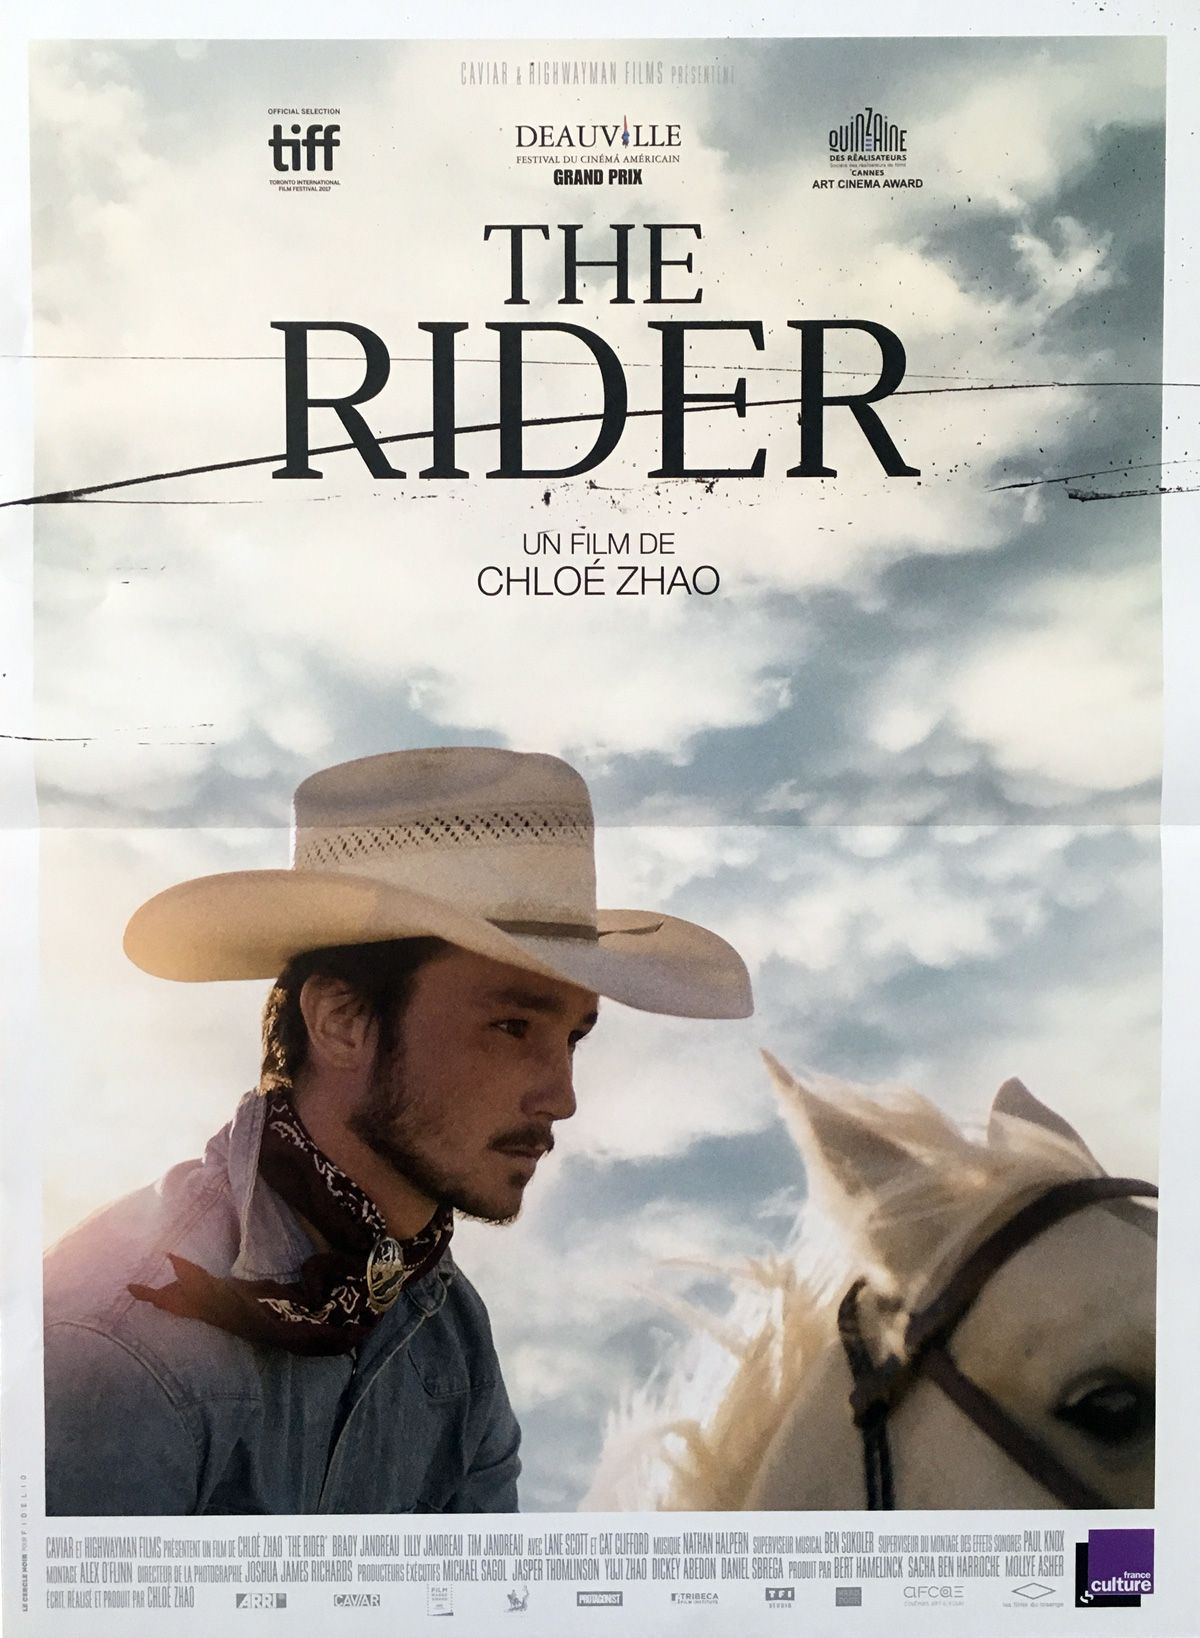 The Rider (2018) - After a riding accident leaves him unable to compete on  the rodeo circuit, a young cowboy searches for a new purpose.